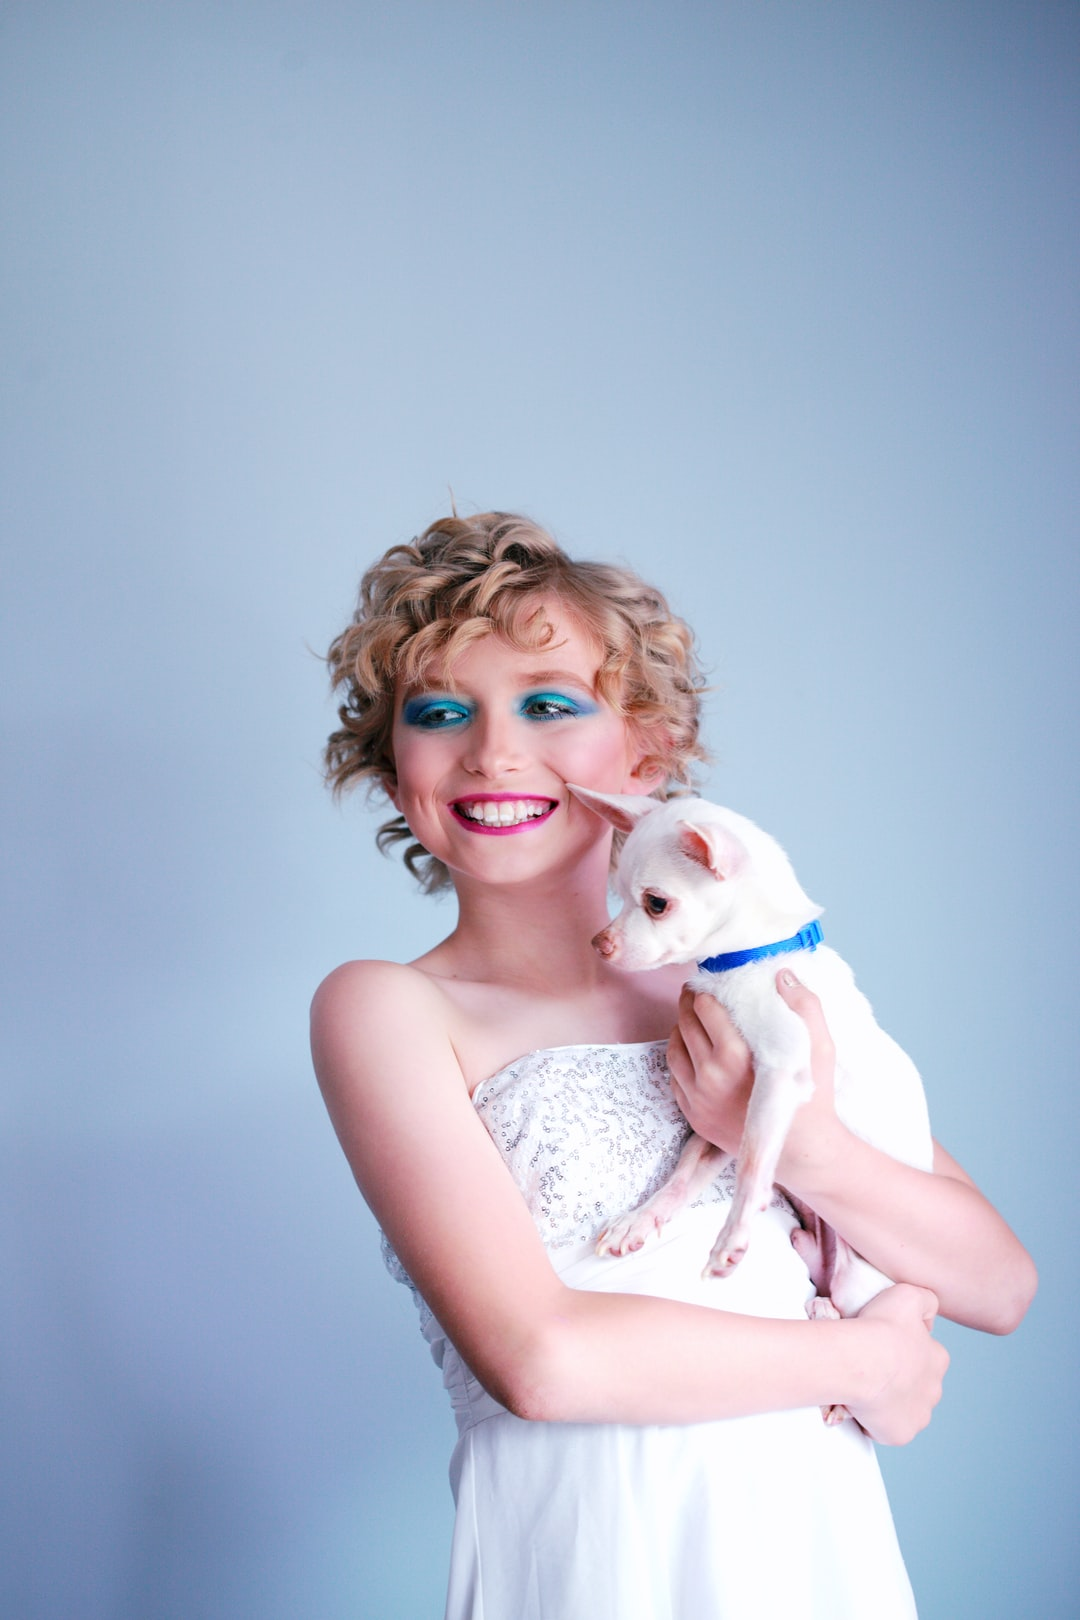 Bink, drag kid, with her chihuahua.